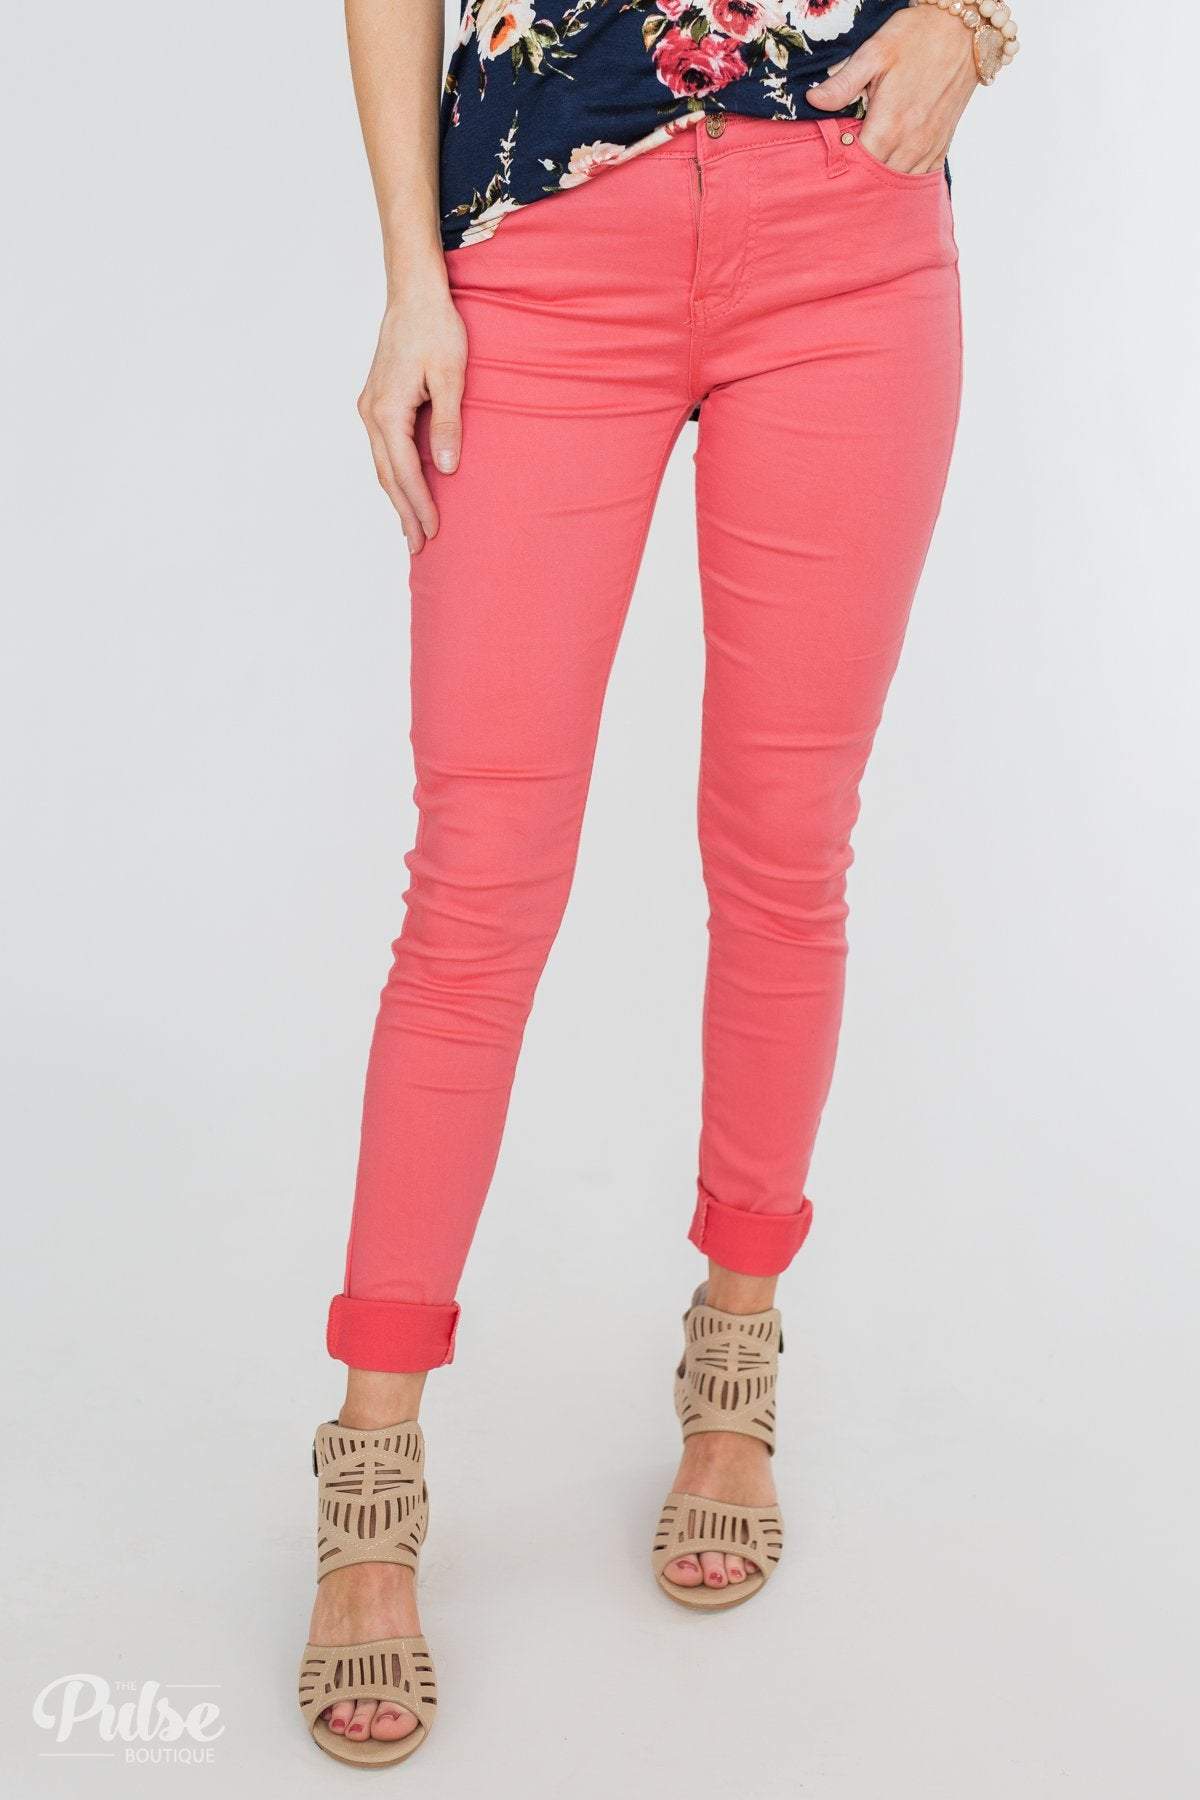 Celebrity Pink Belt Jeans- Prudence Wash